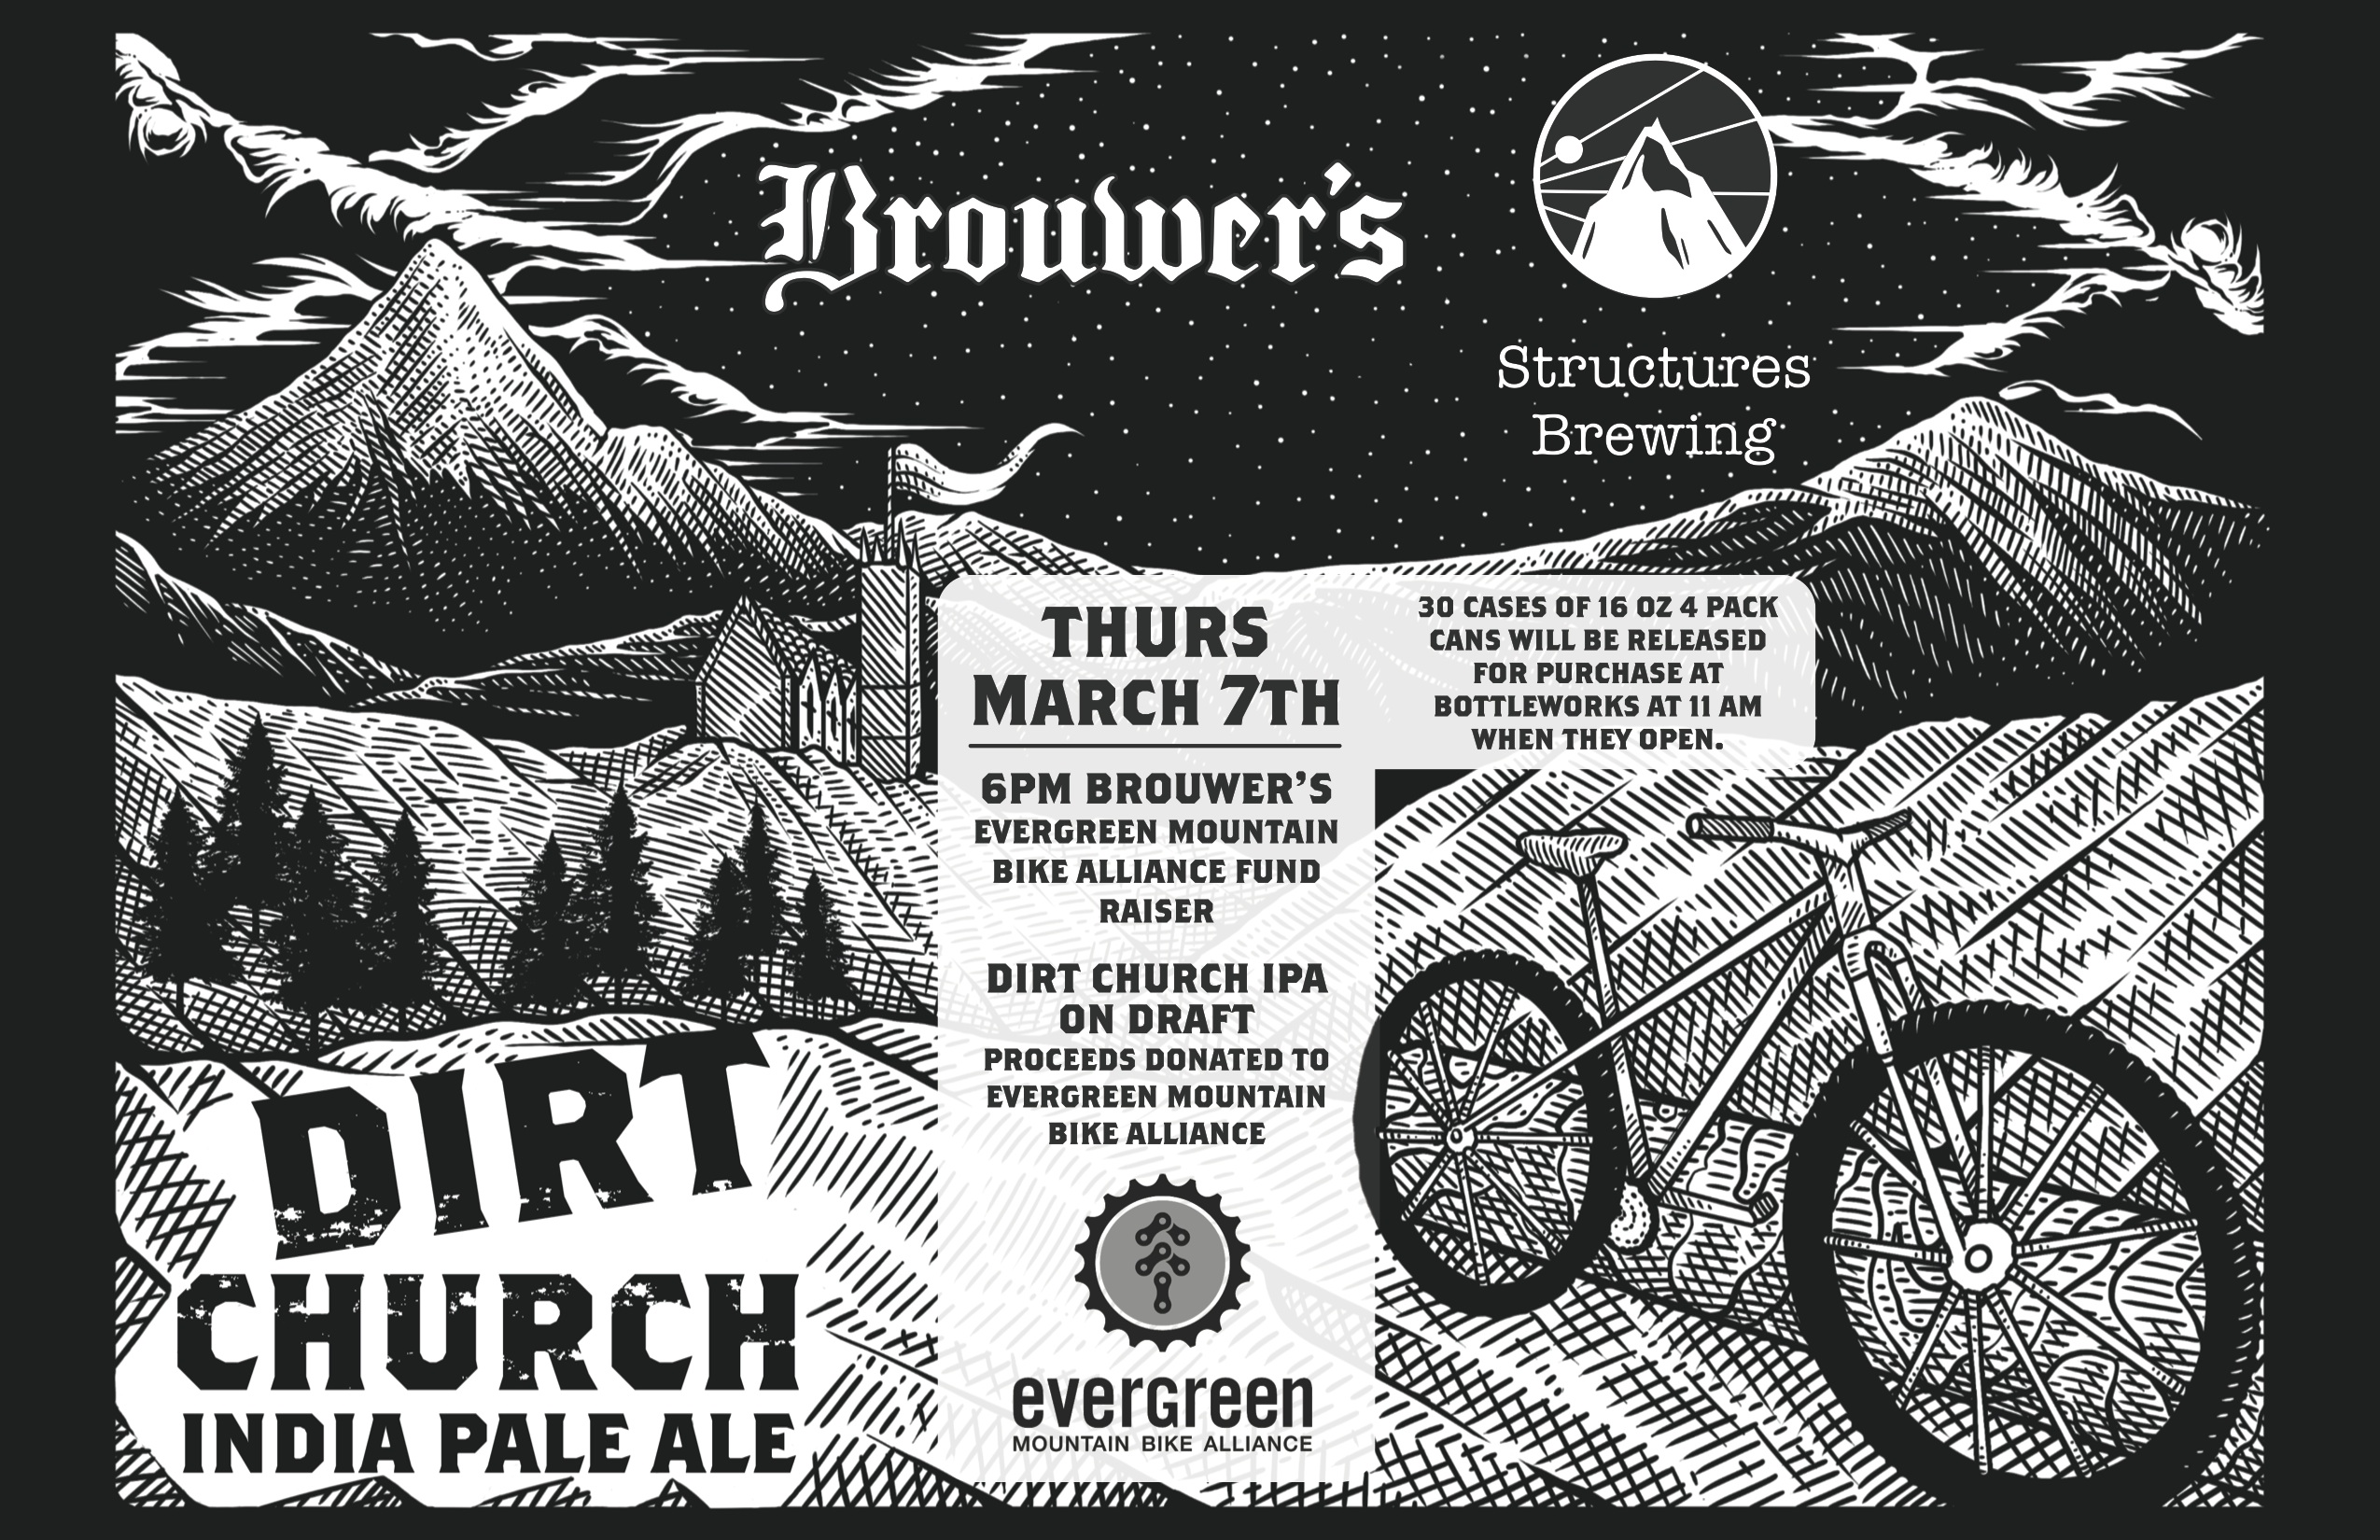 Thursday, March 7th Structures Dirt Church IPA Fundraiser for Evergreen MTB Alliance